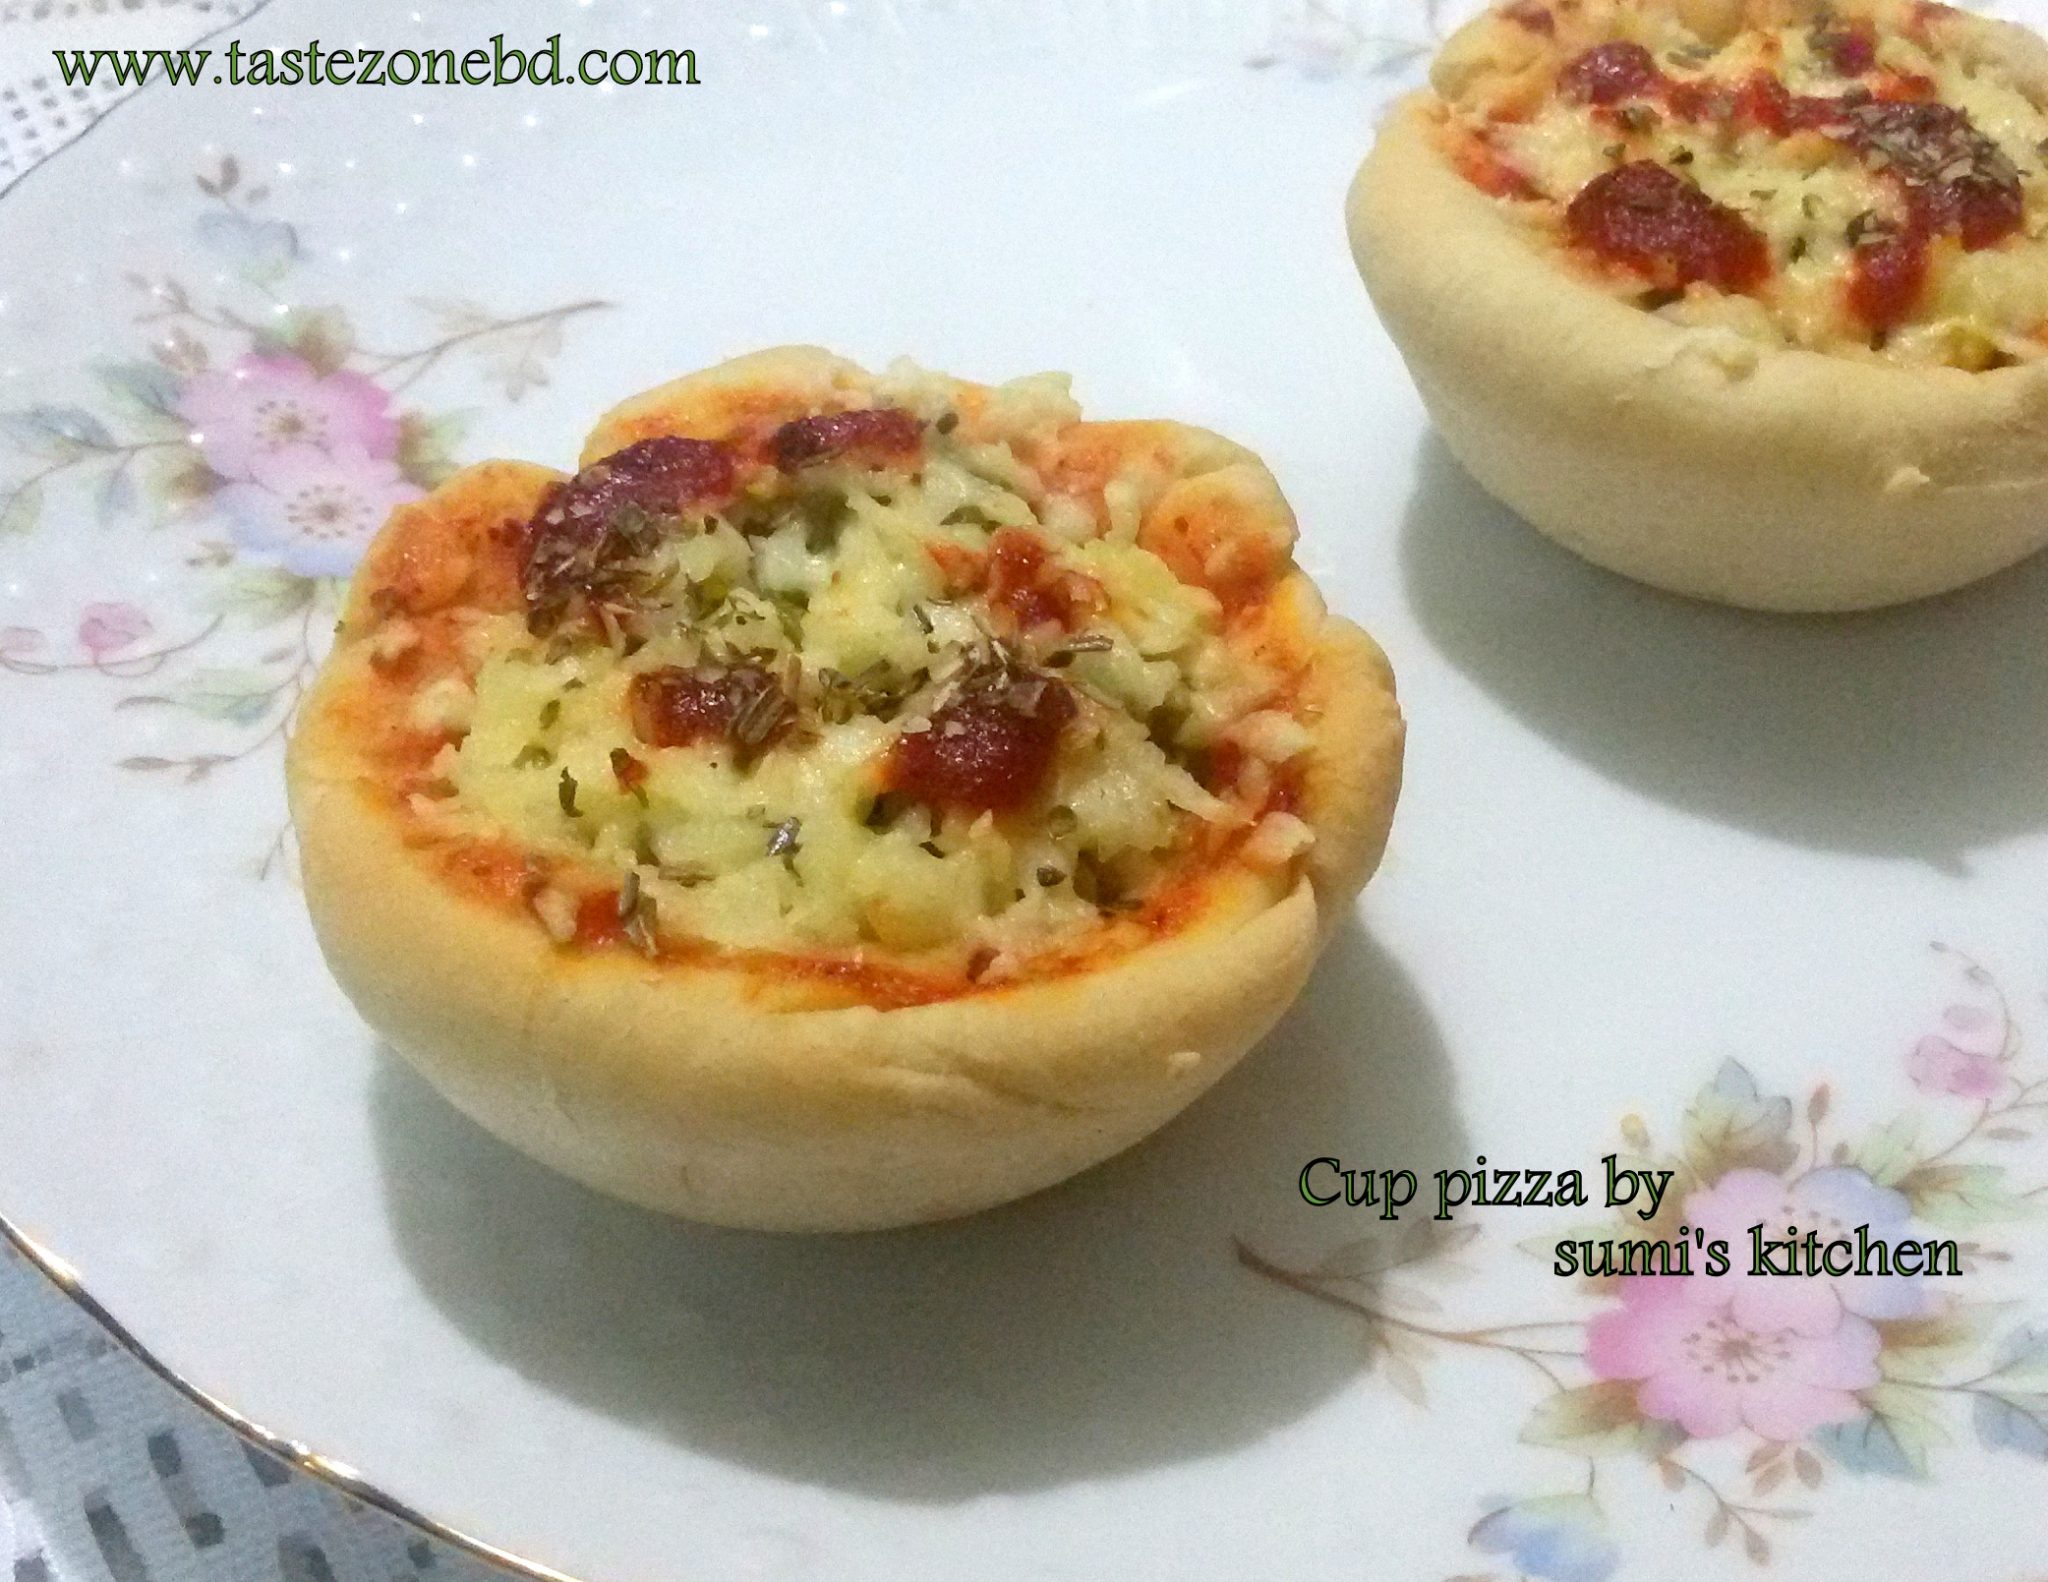 Cup pizza